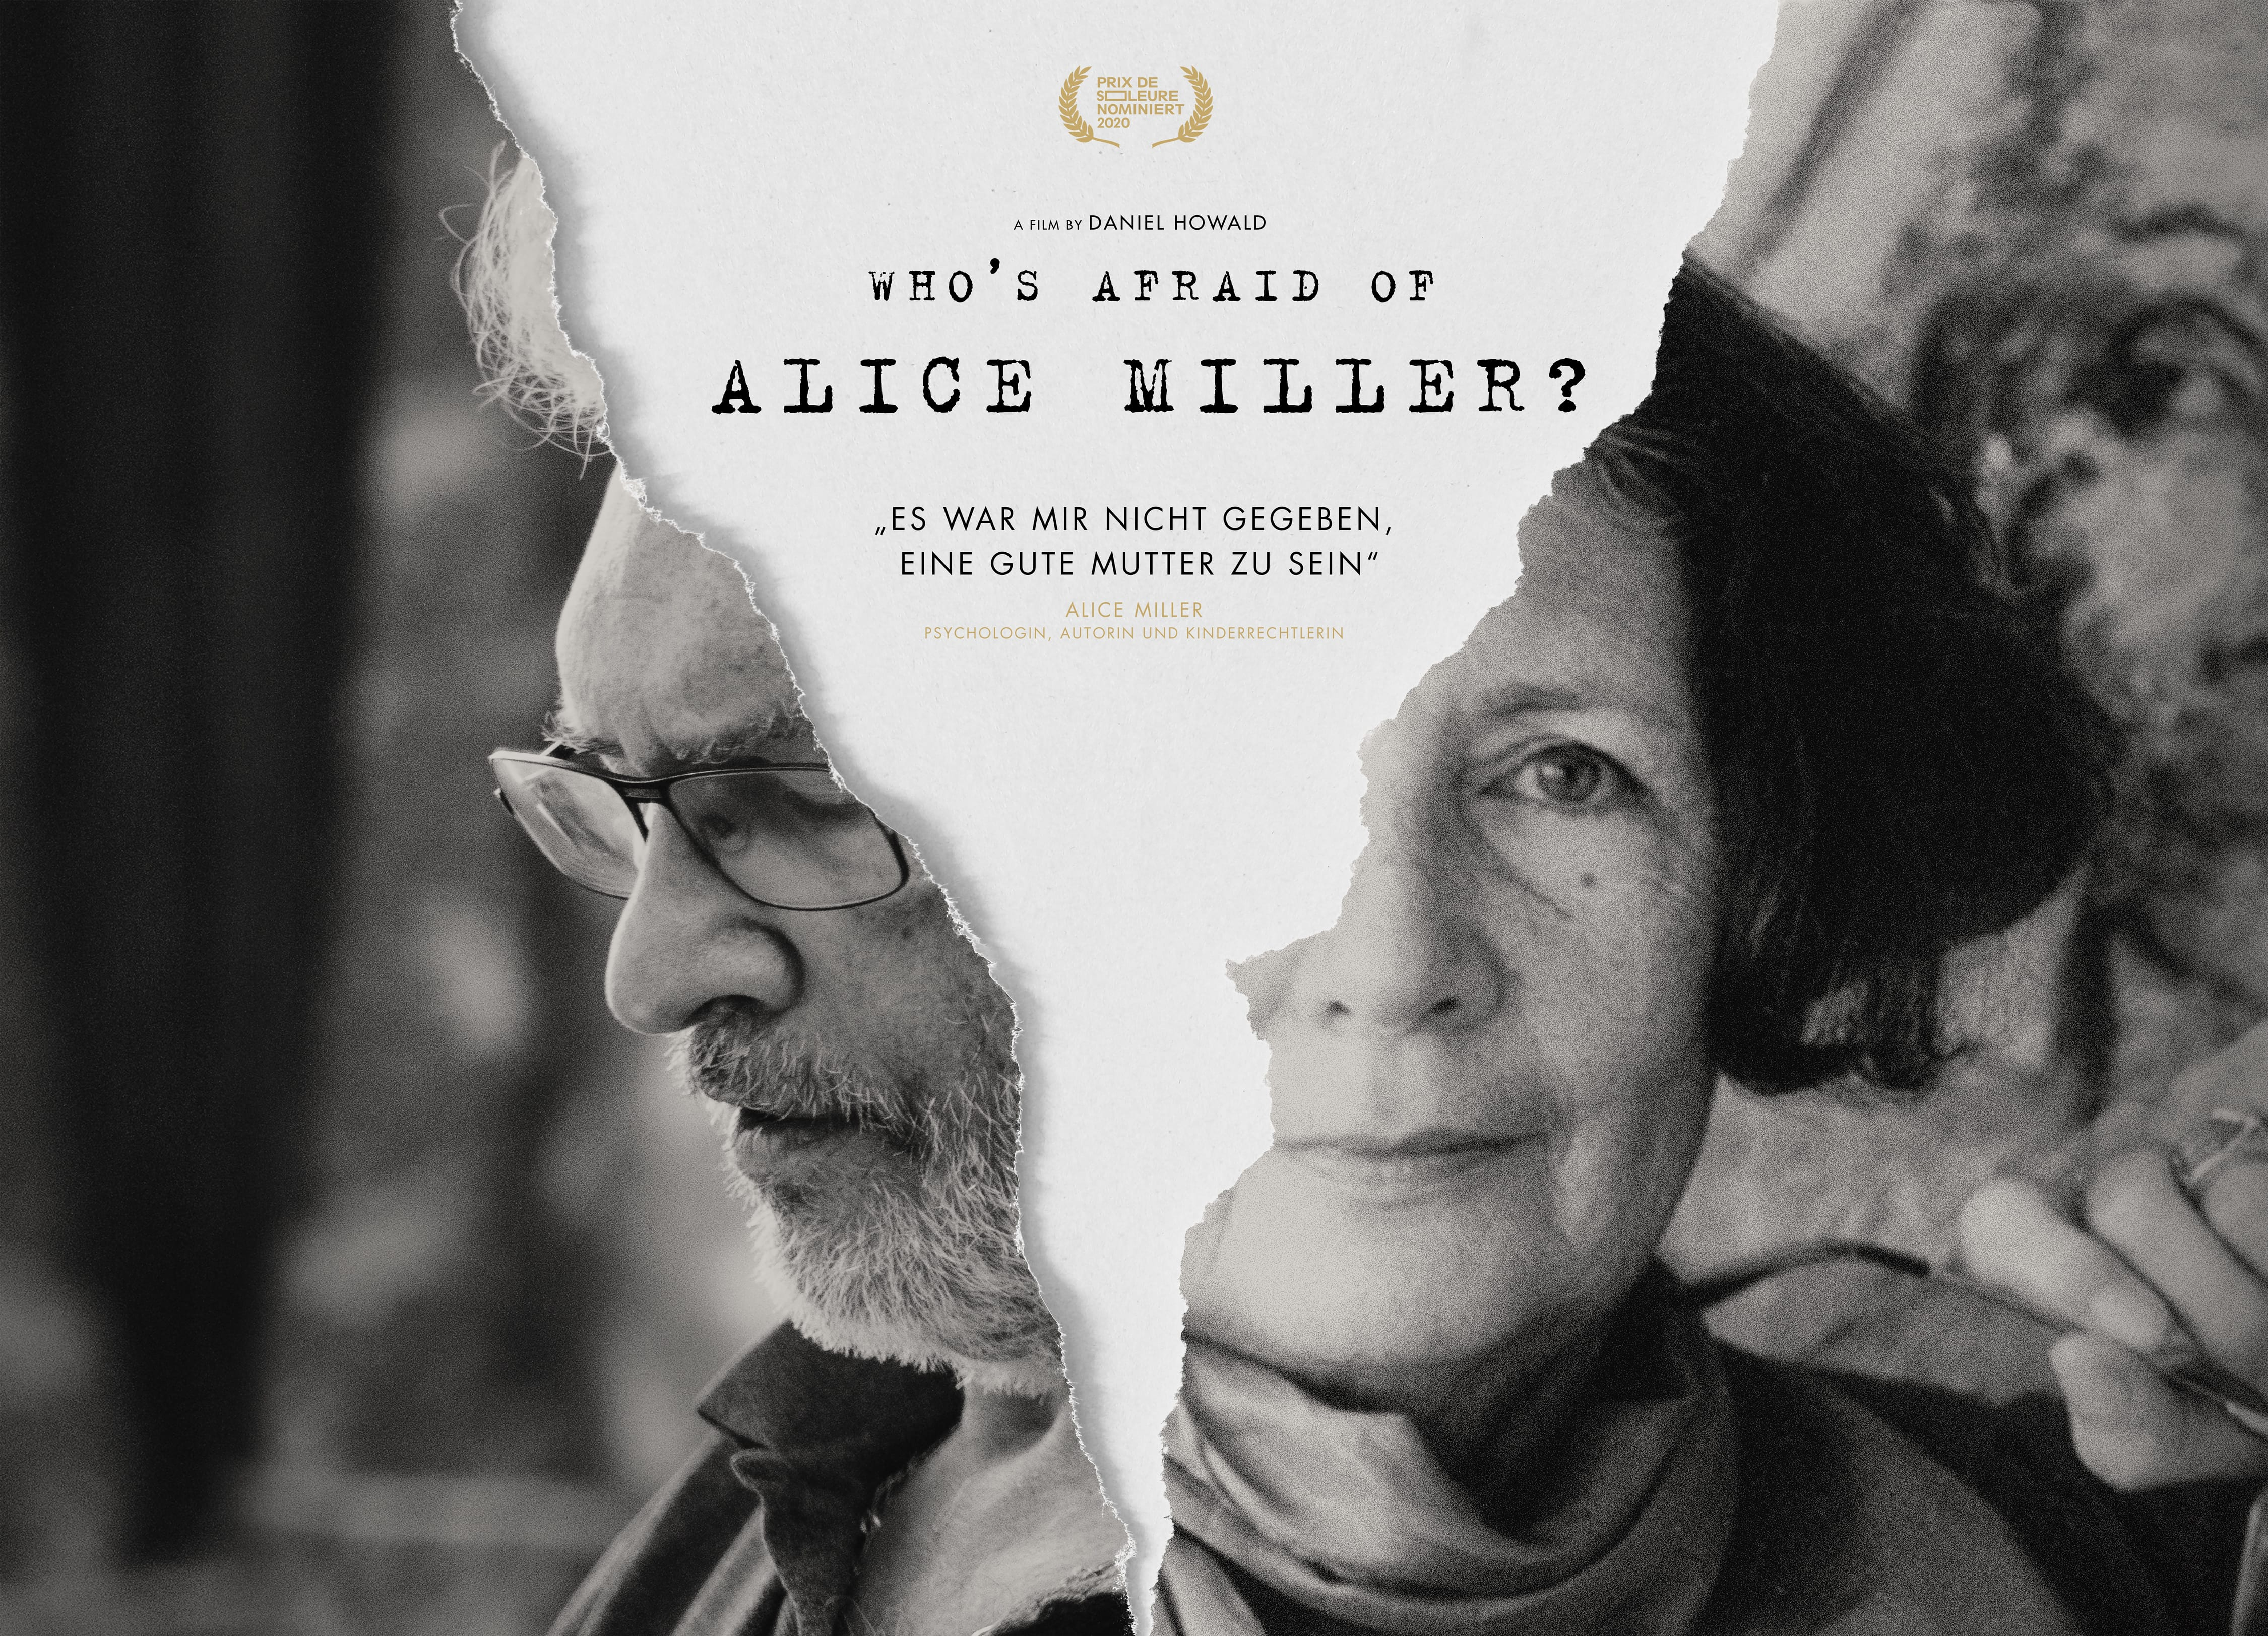 Who's afraid of Alice Miller? A Film by Daniel Howald.